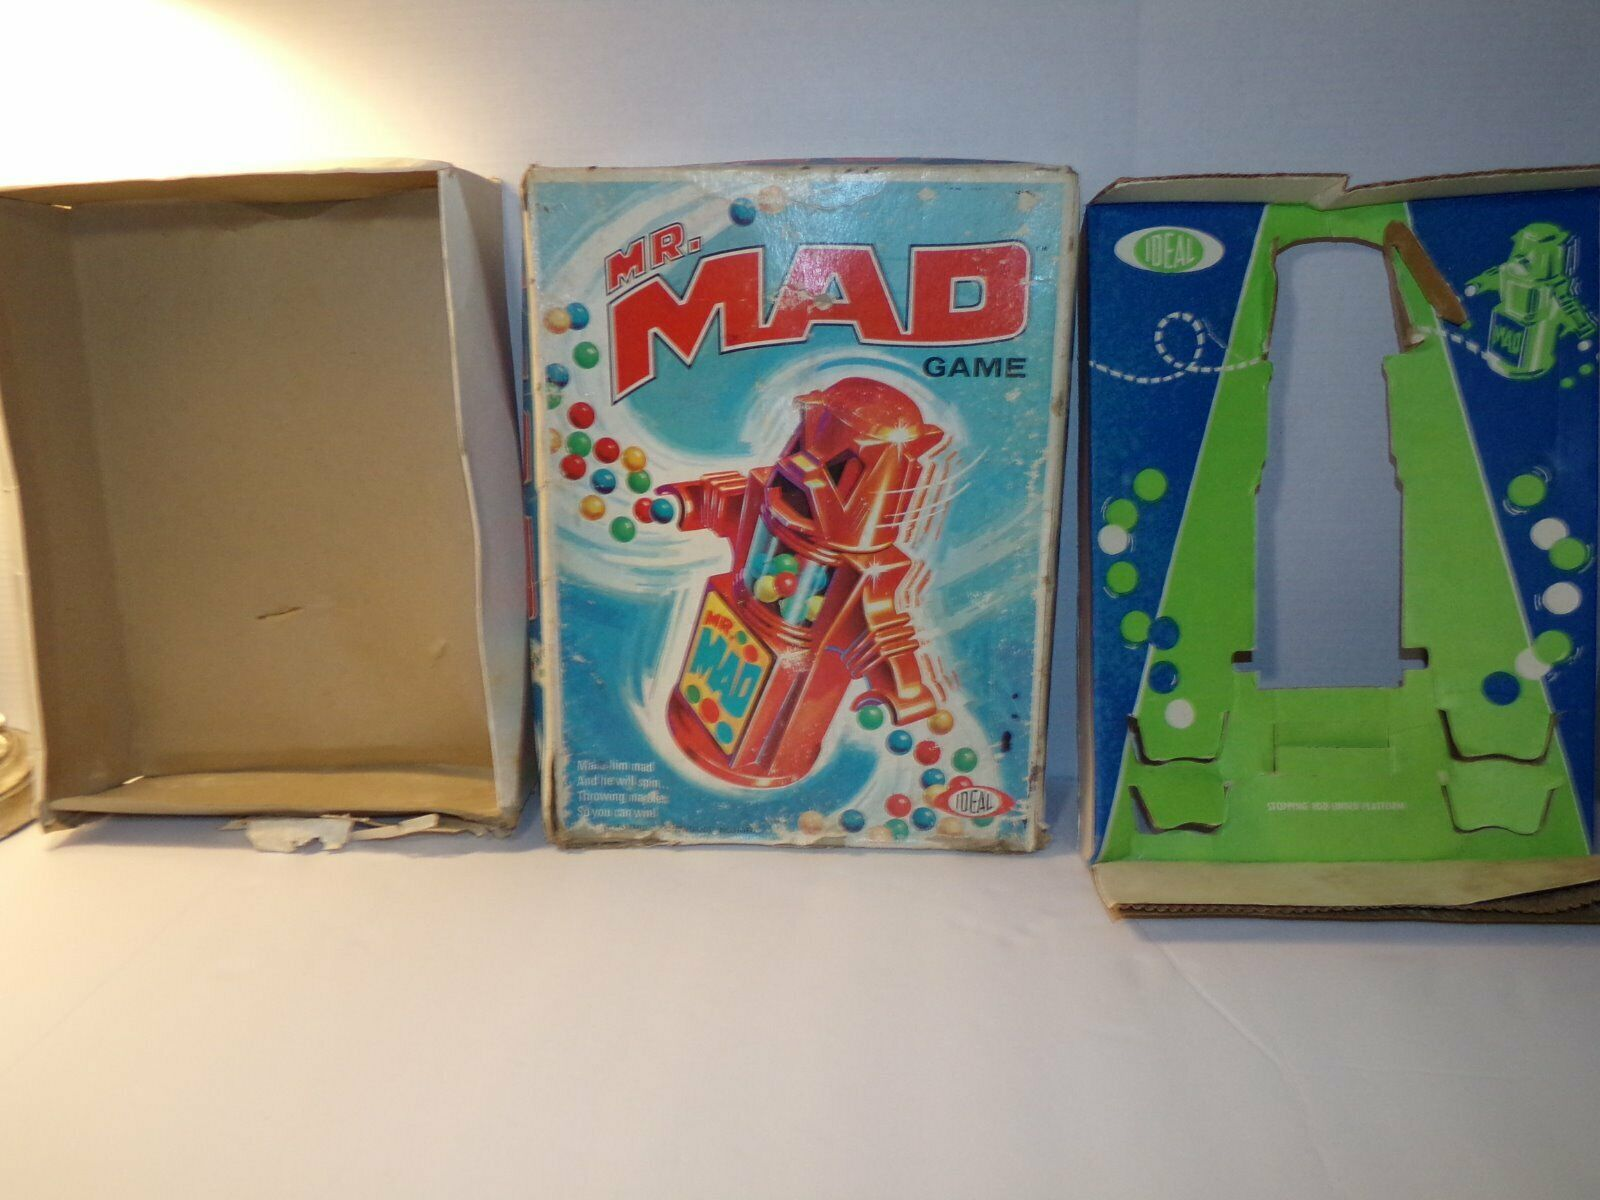 Vintage 1970 IDEAL Game MR MAD 100% Complete w  BOX Tested & WORKS Super CLEAN